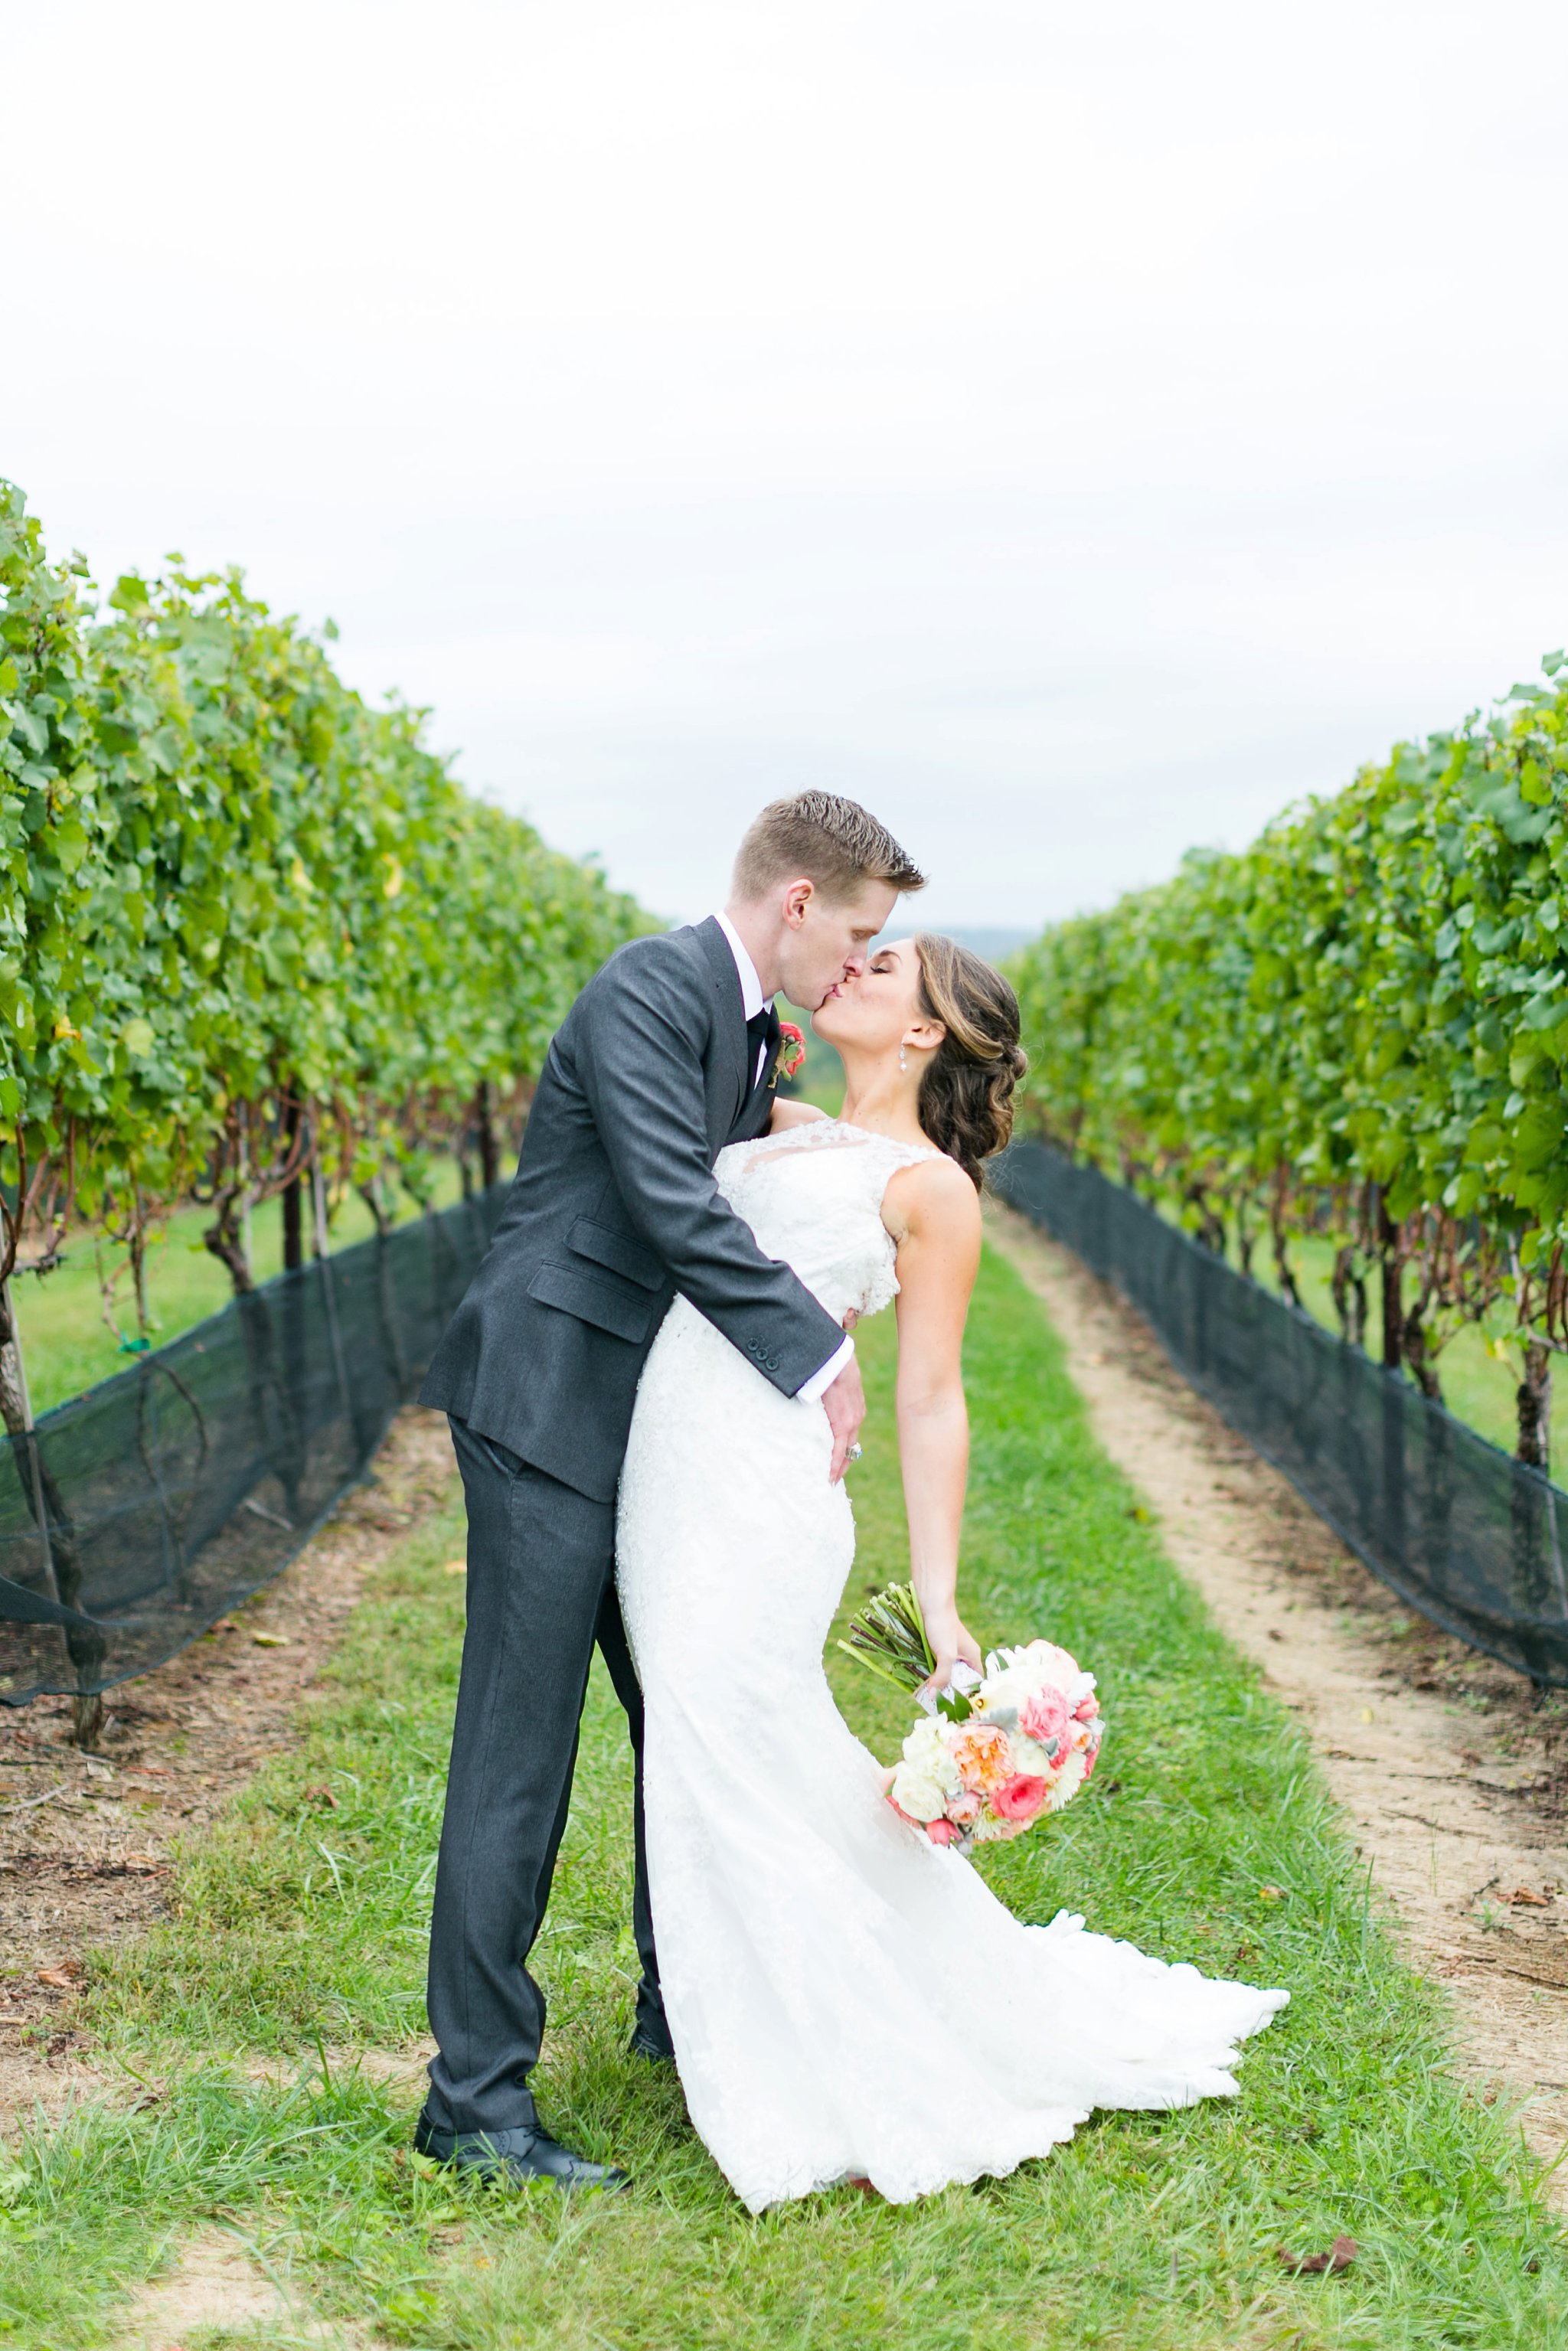 Stone Tower Winery Wedding Photos Virginia Wedding Photographer Megan Kelsey Photography Sam & Angela-216.jpg